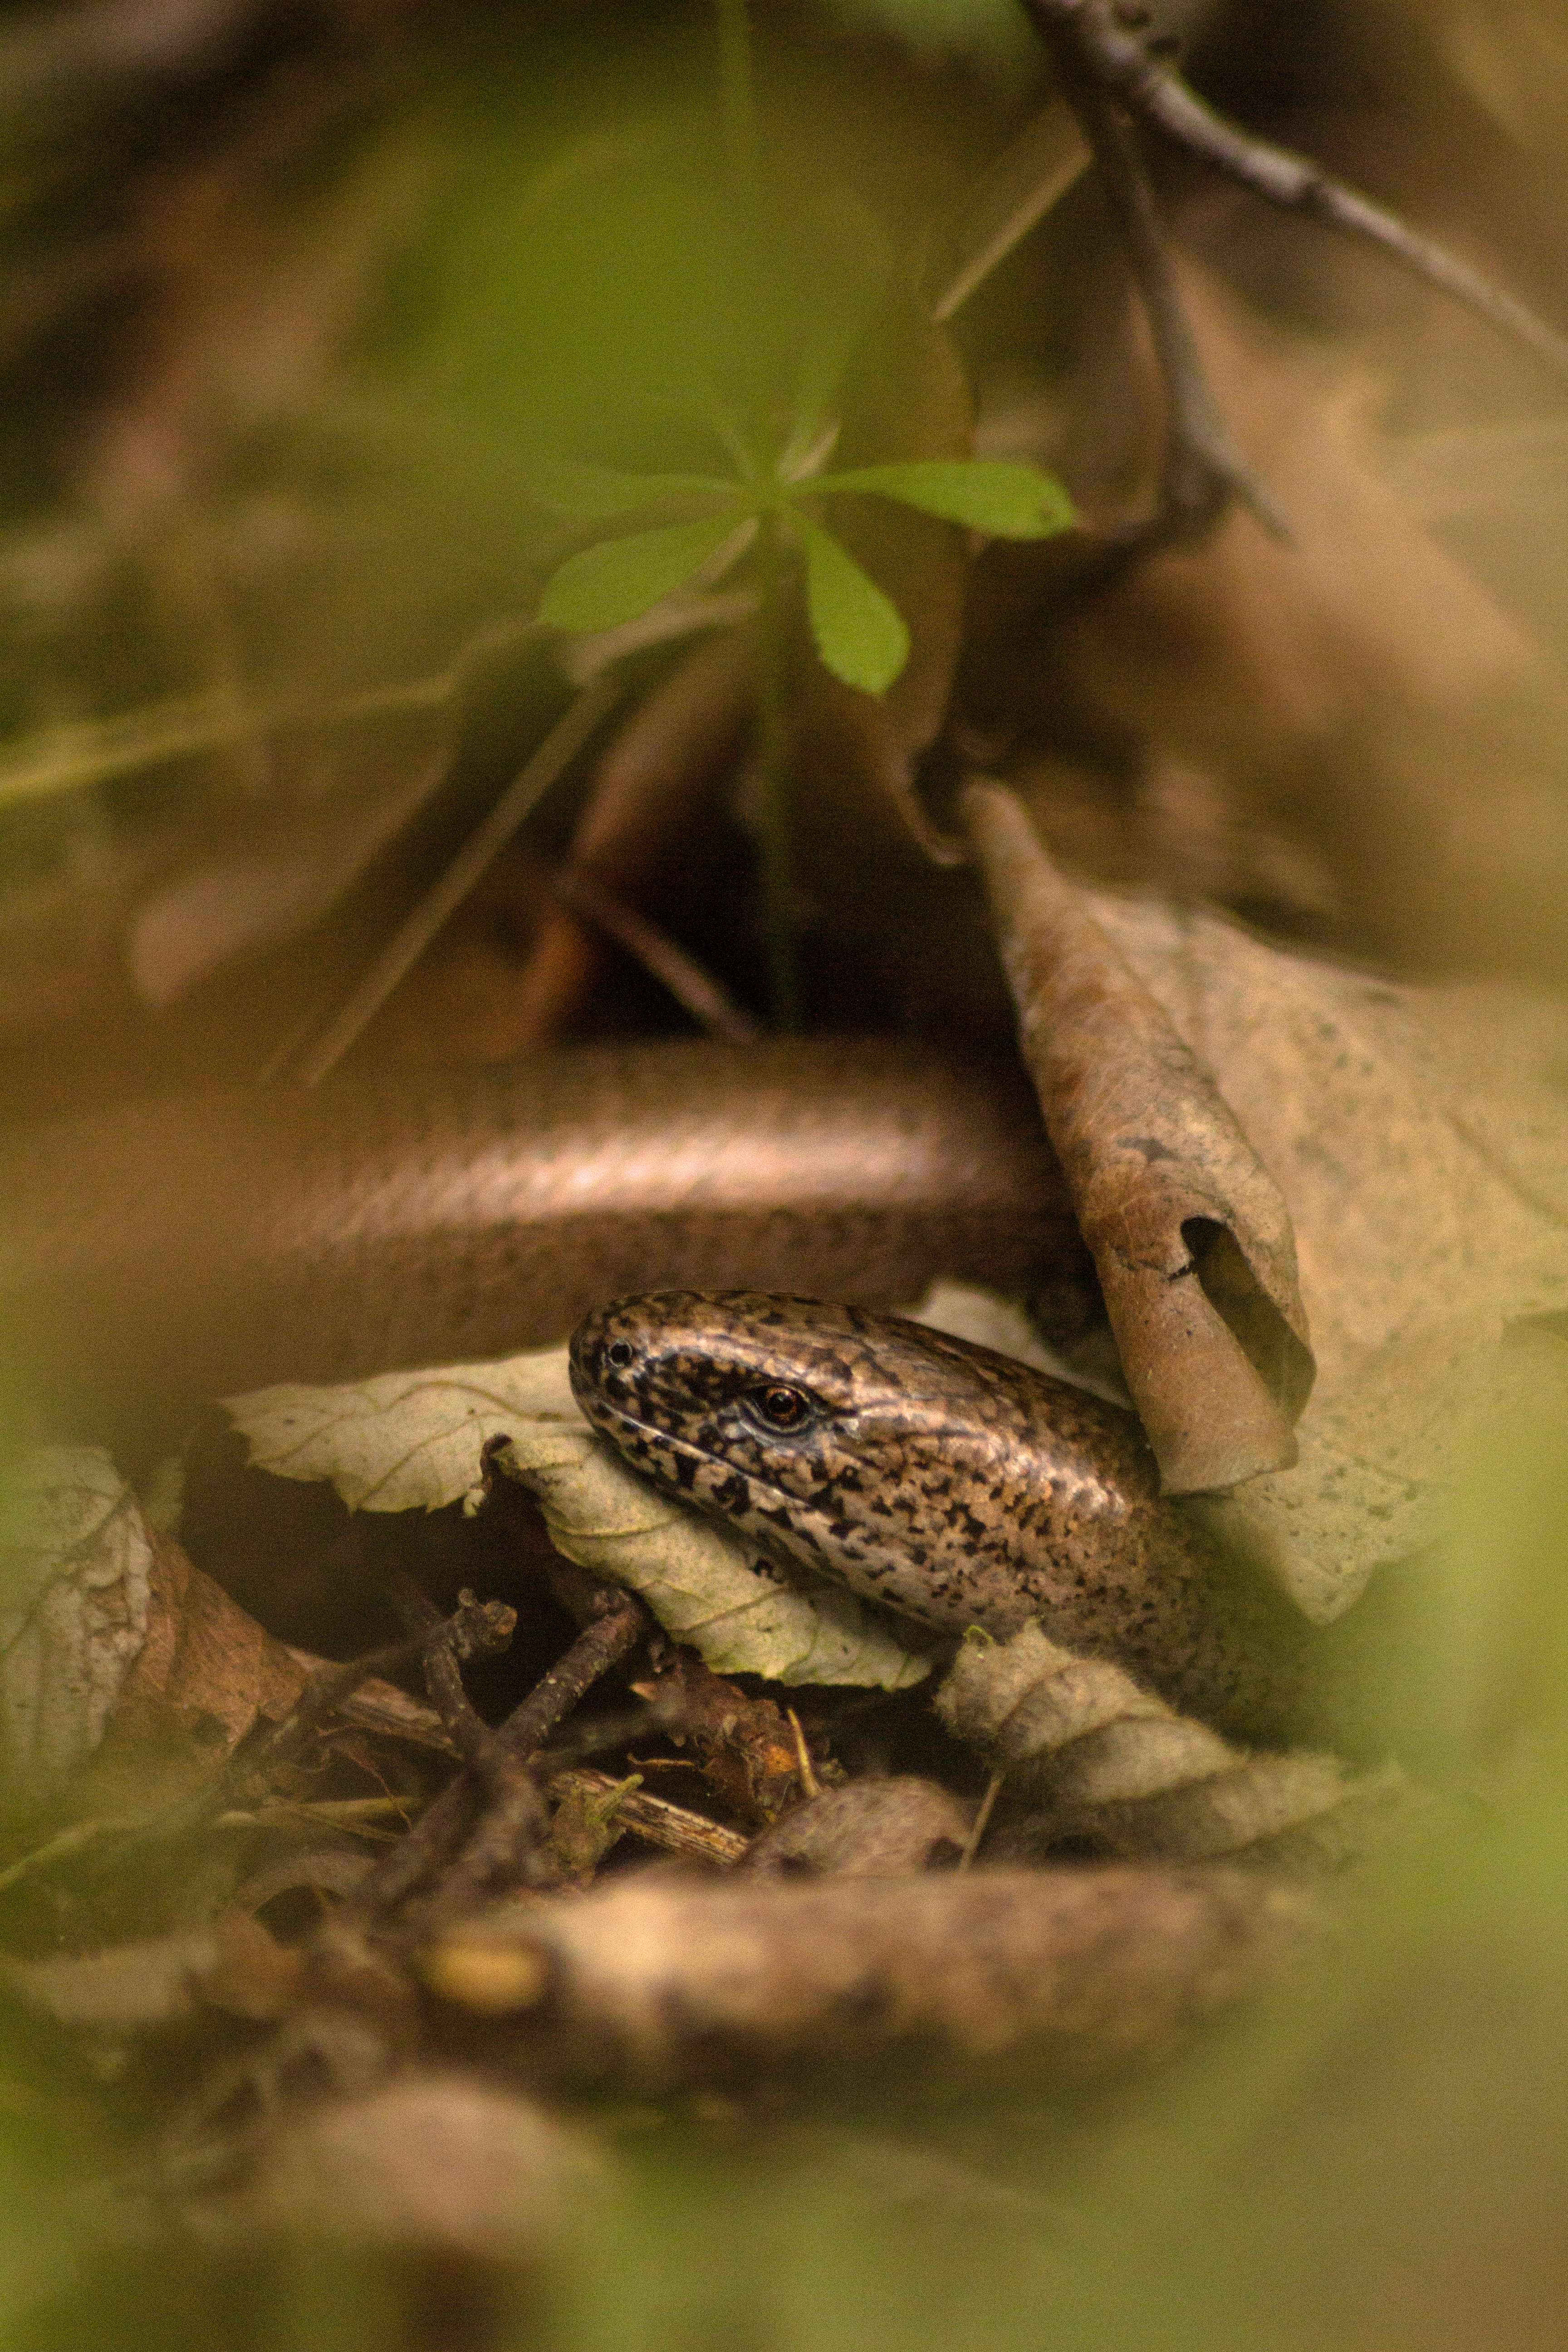 A slowworm on a woodland floor surrounded by leaf litter.